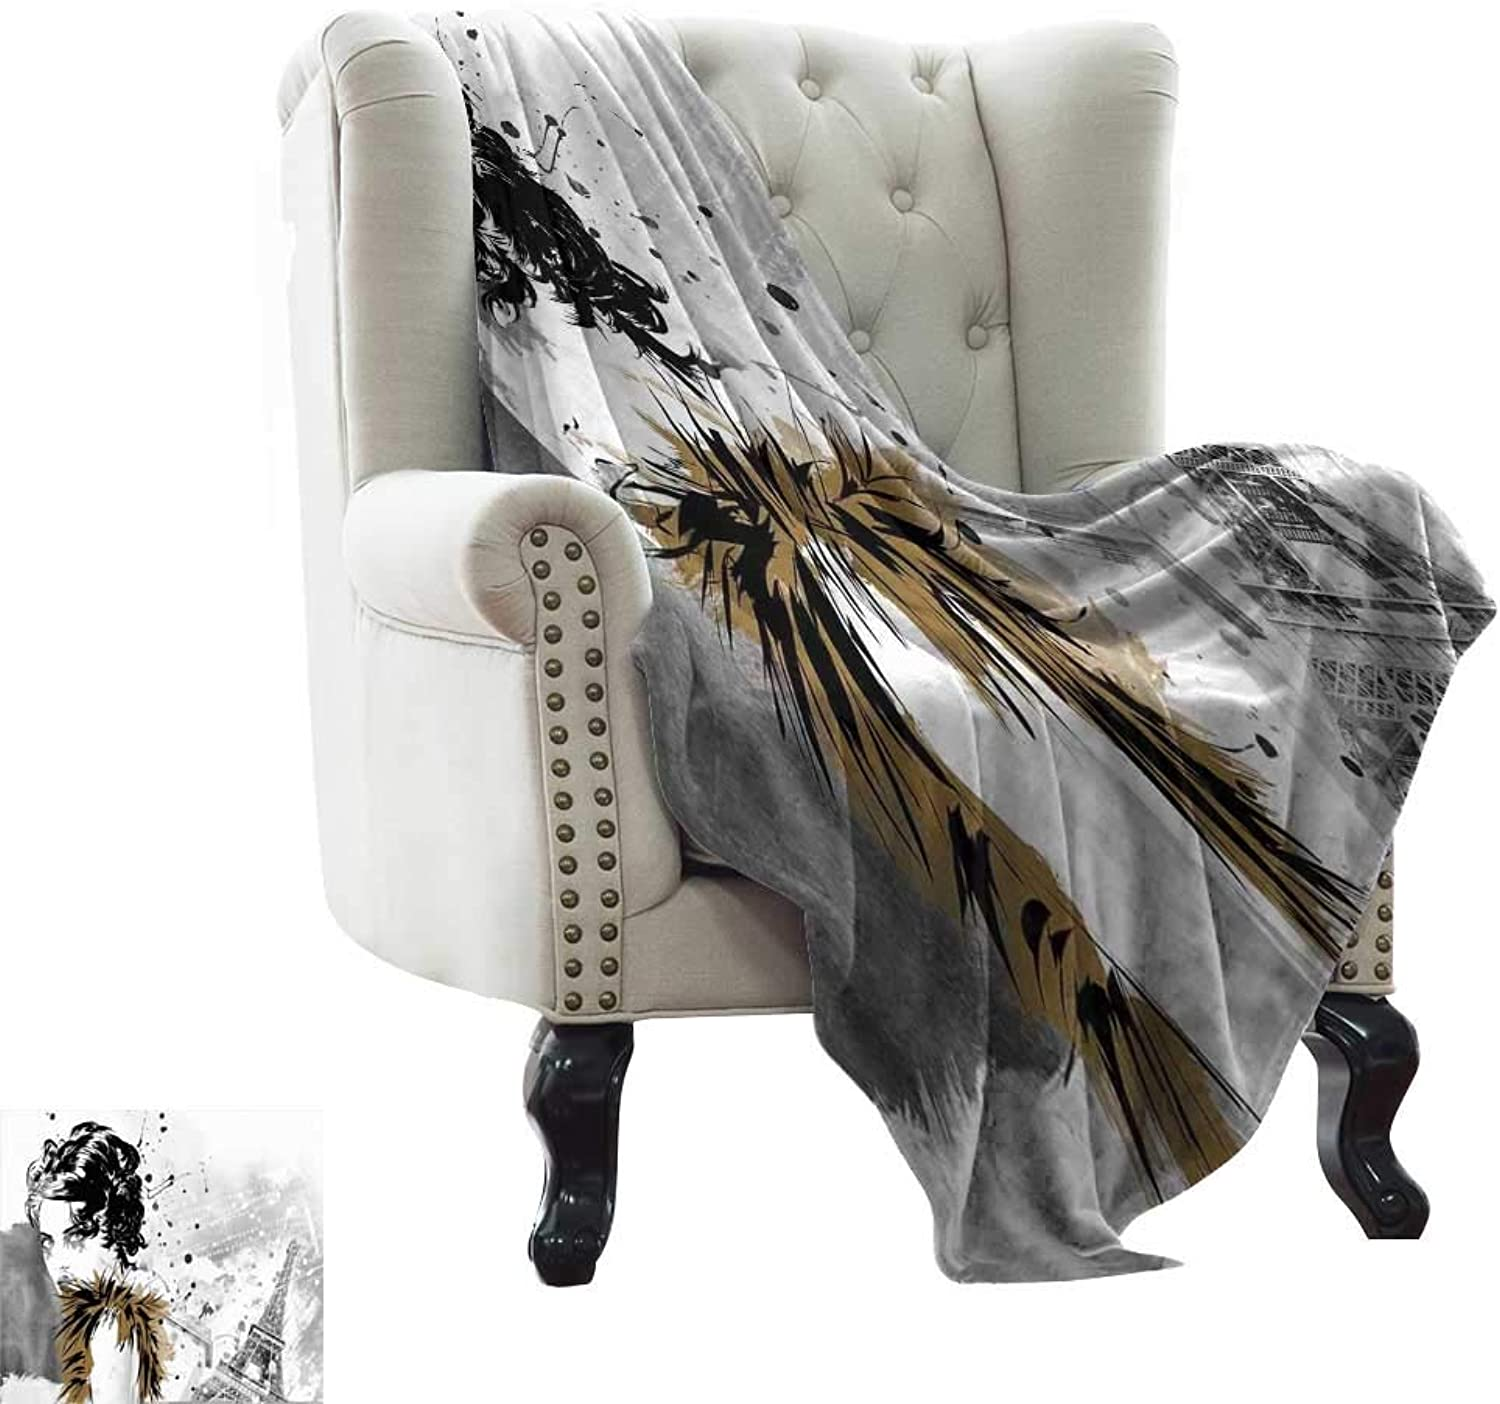 BelleAckerman Warm Blanket Modern,Posing Fashion Model Girl with Feathers and Dots Paris Eiffel Contemporary Artful,Grey White Microfiber All Season Blanket for Bed or Couch Multicolor 35 x60